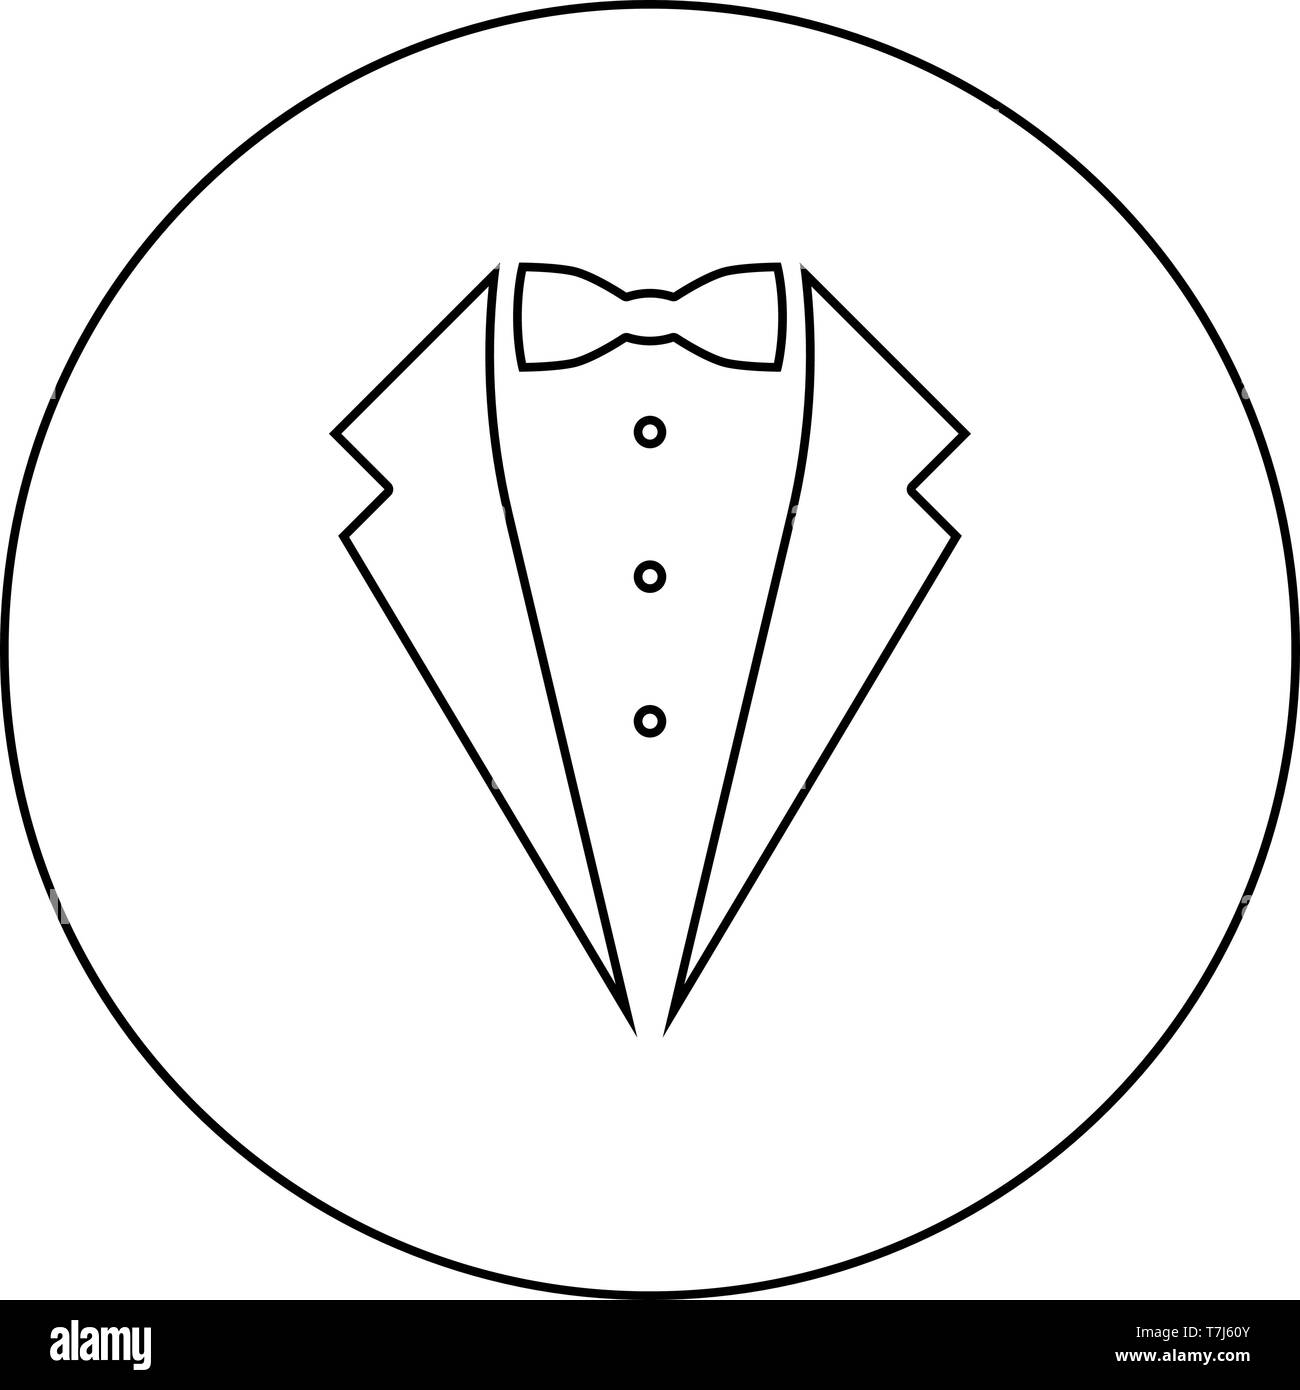 Symbol service dinner jacket bow Tuxedo concept Tux sign Butler gentleman idea Waiter suit icon in circle round outline black color vector - Stock Image